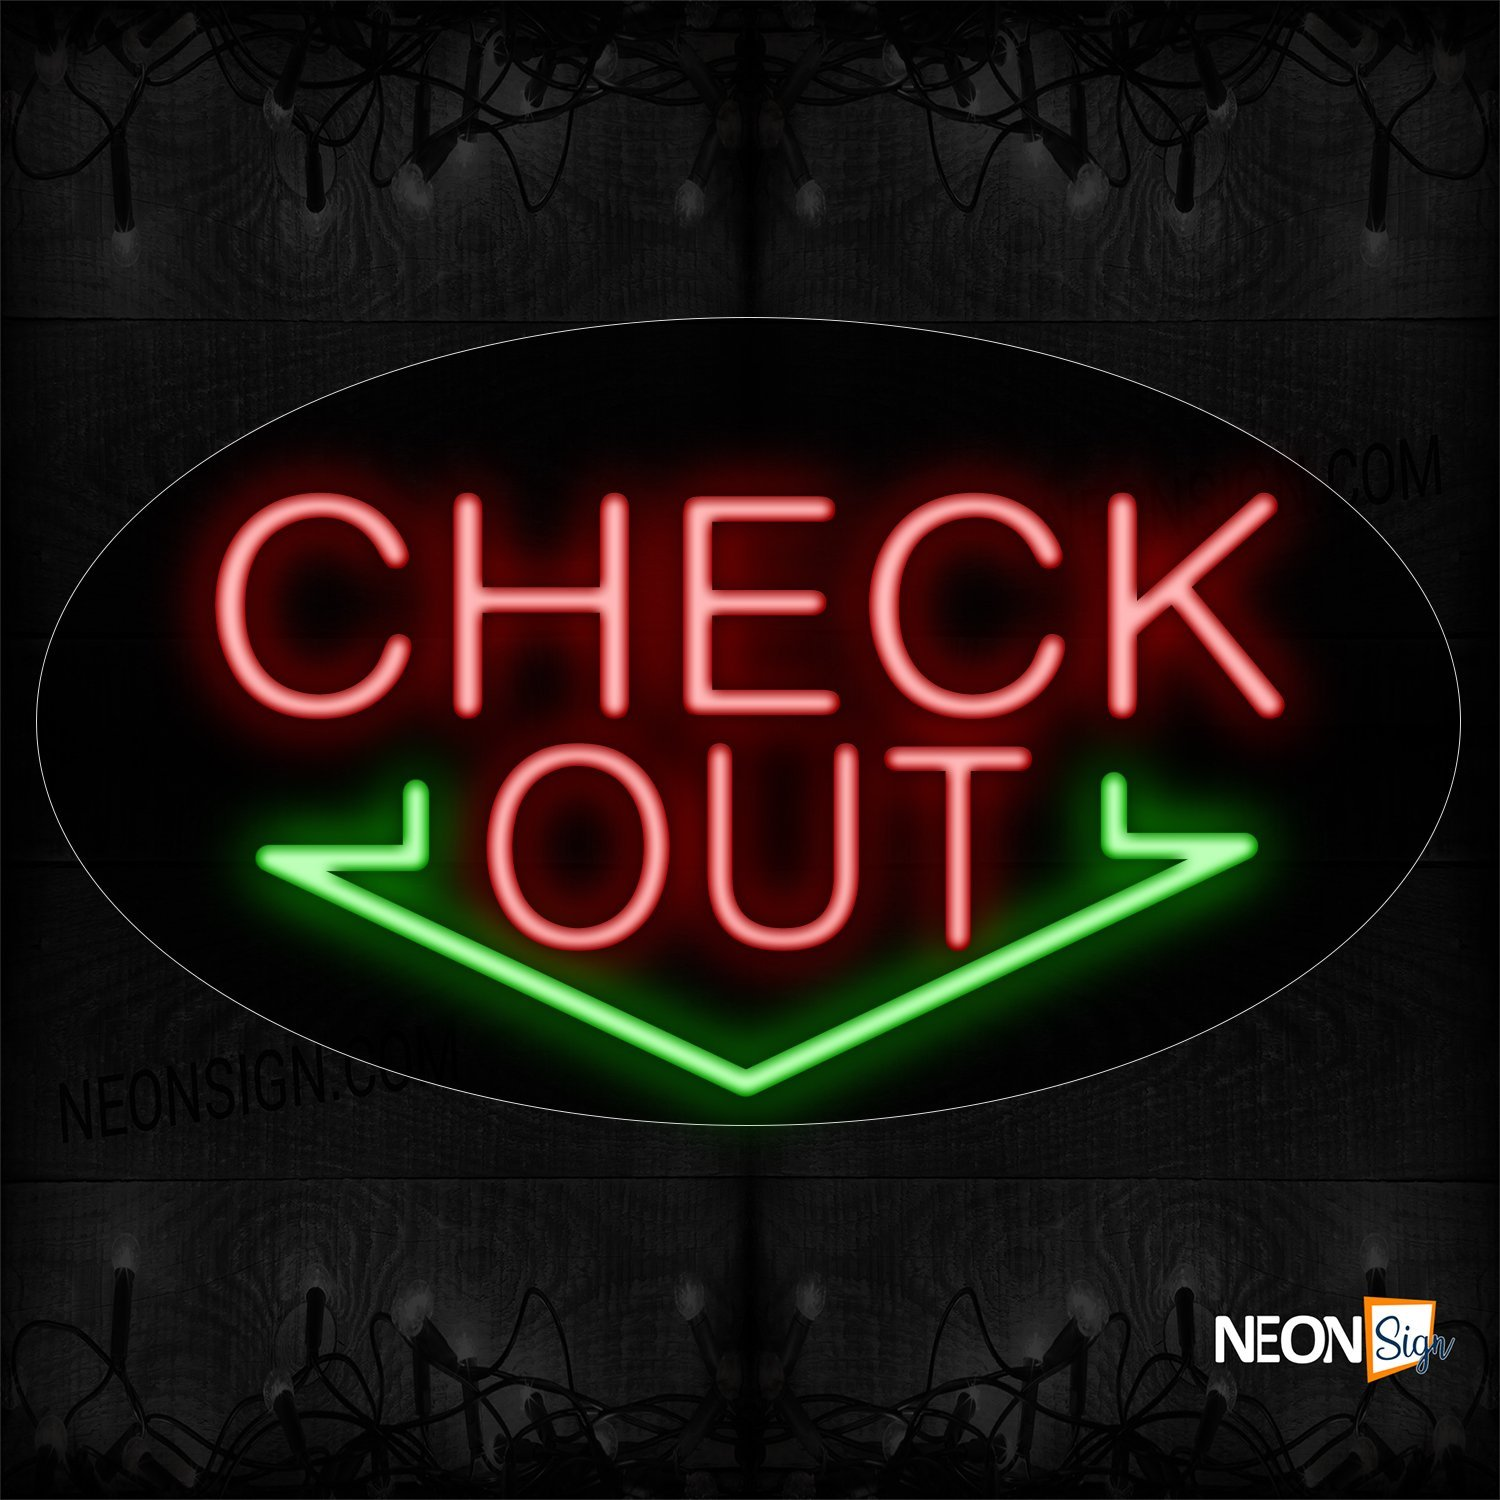 Image of 14175 Check Out In Red With Arrow Down Neon Sign_17x30 Contoured Black Backing